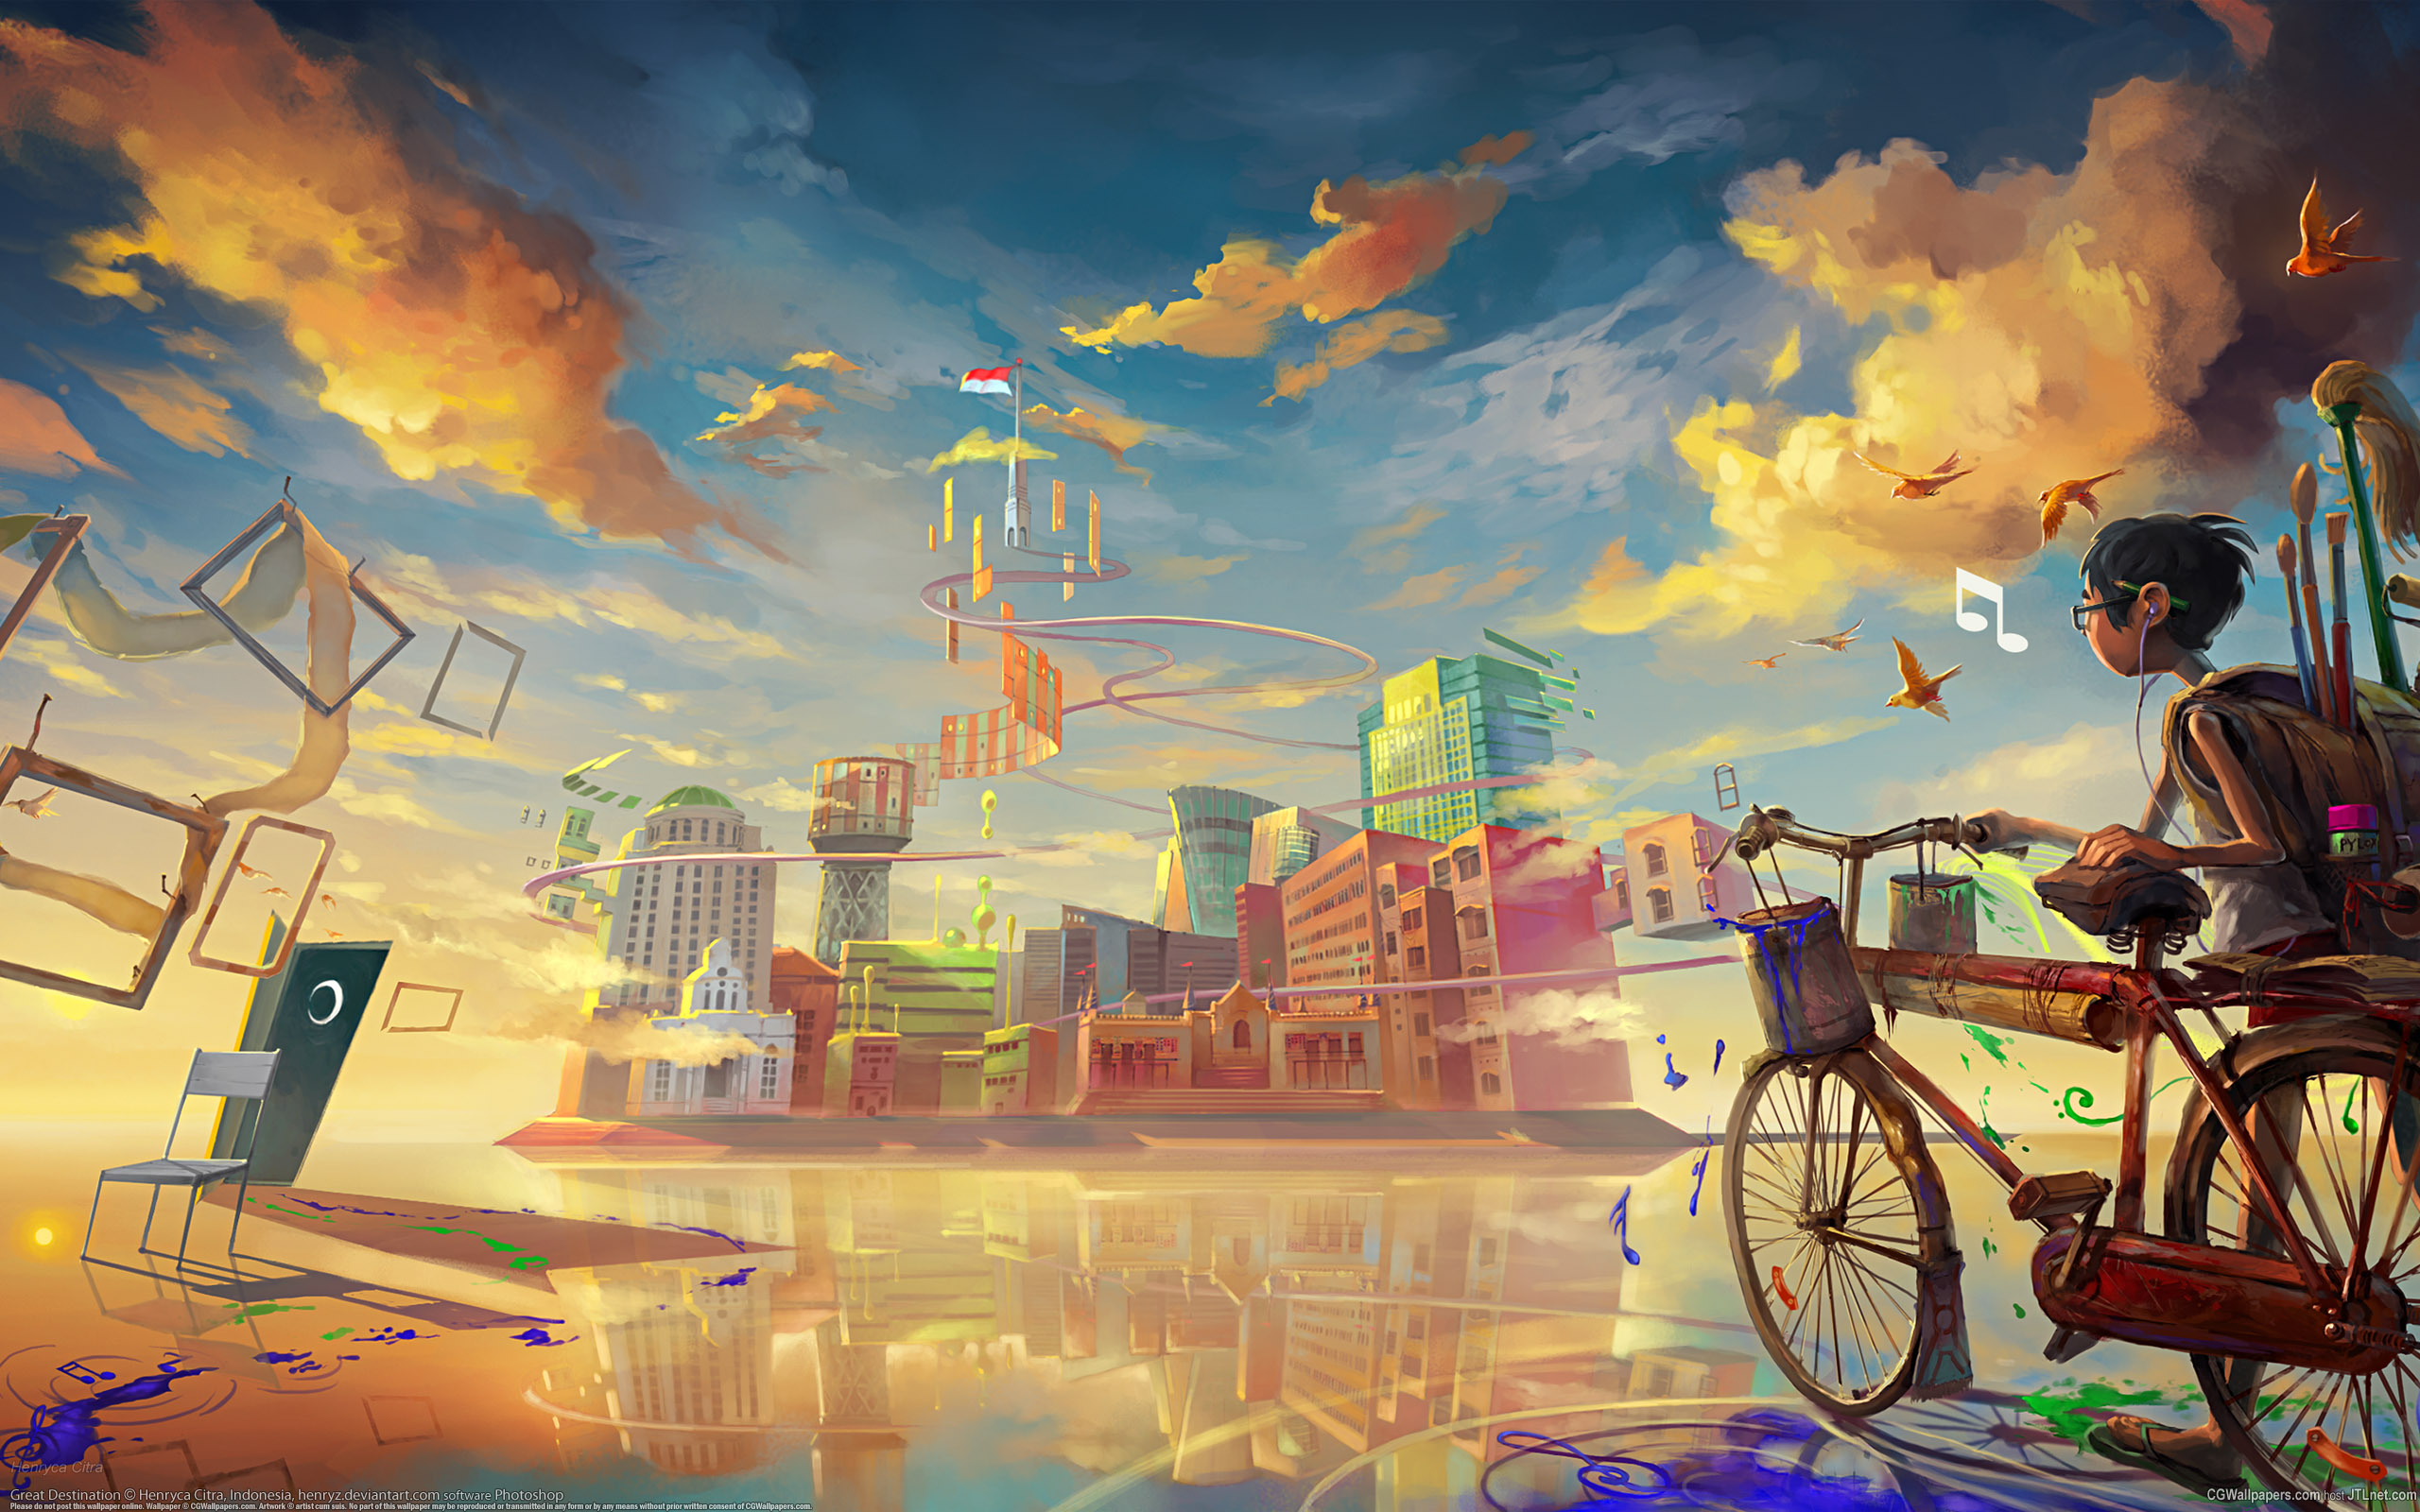 52 artistic background images Pictures